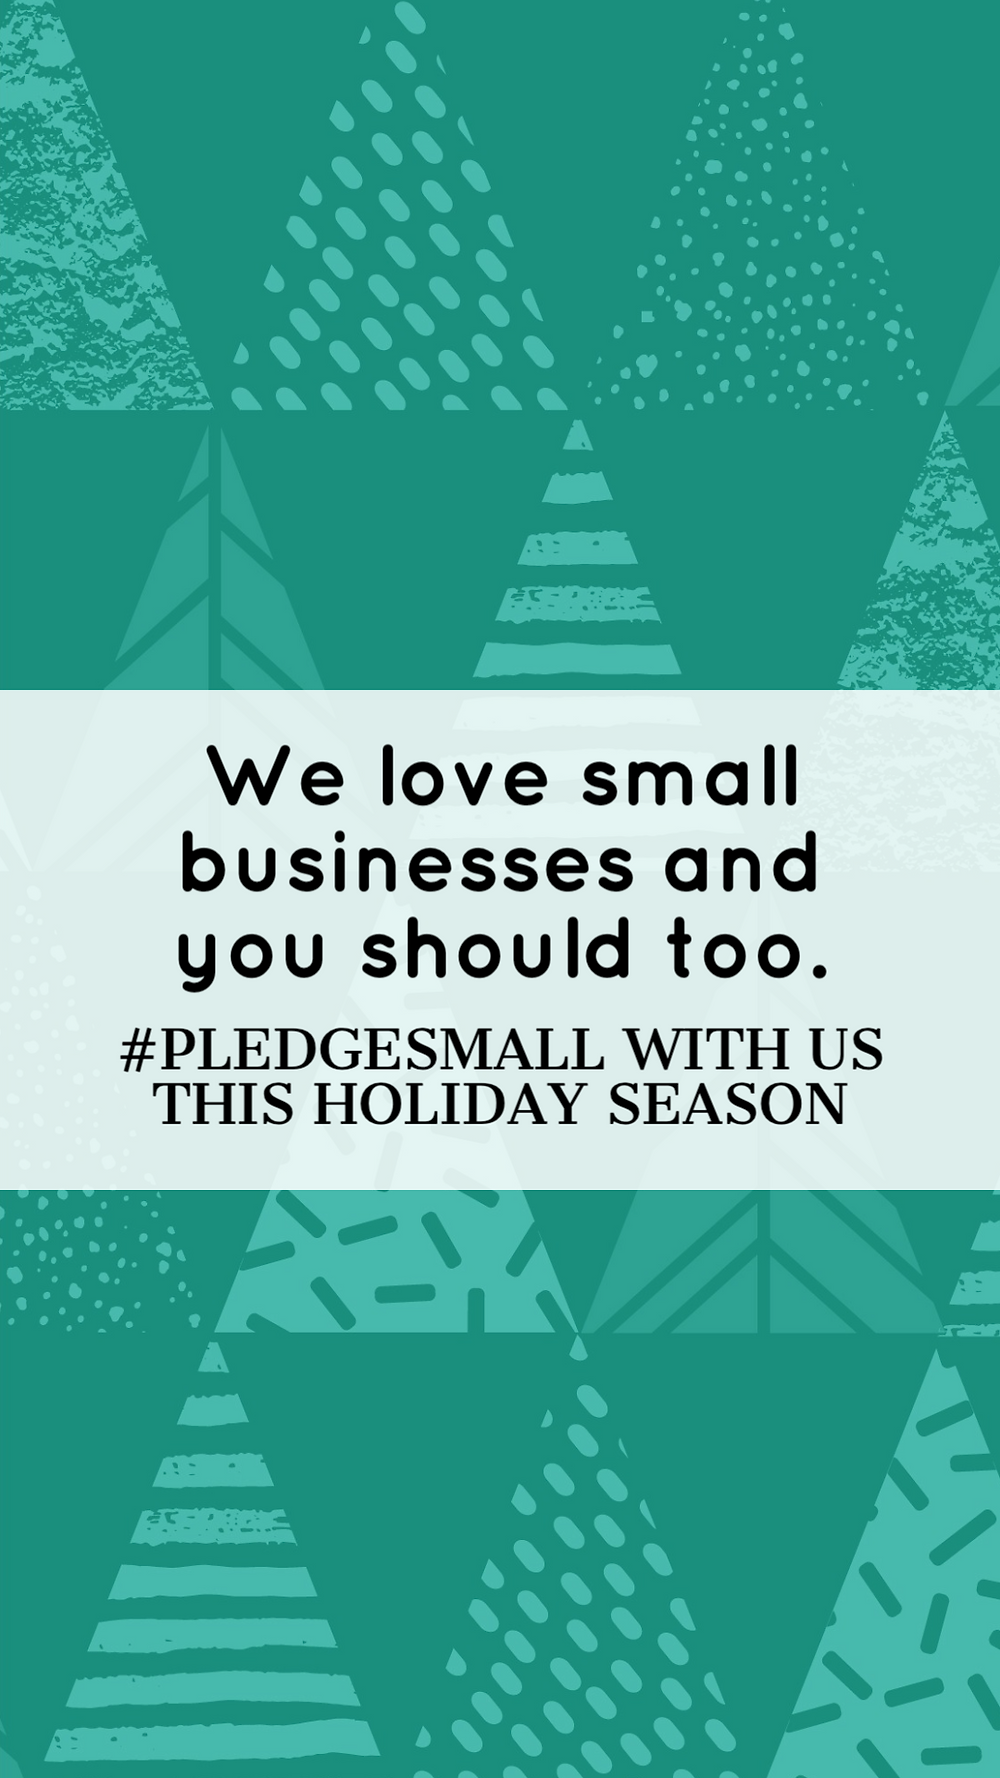 Pledge small shop small business social media story template in teal